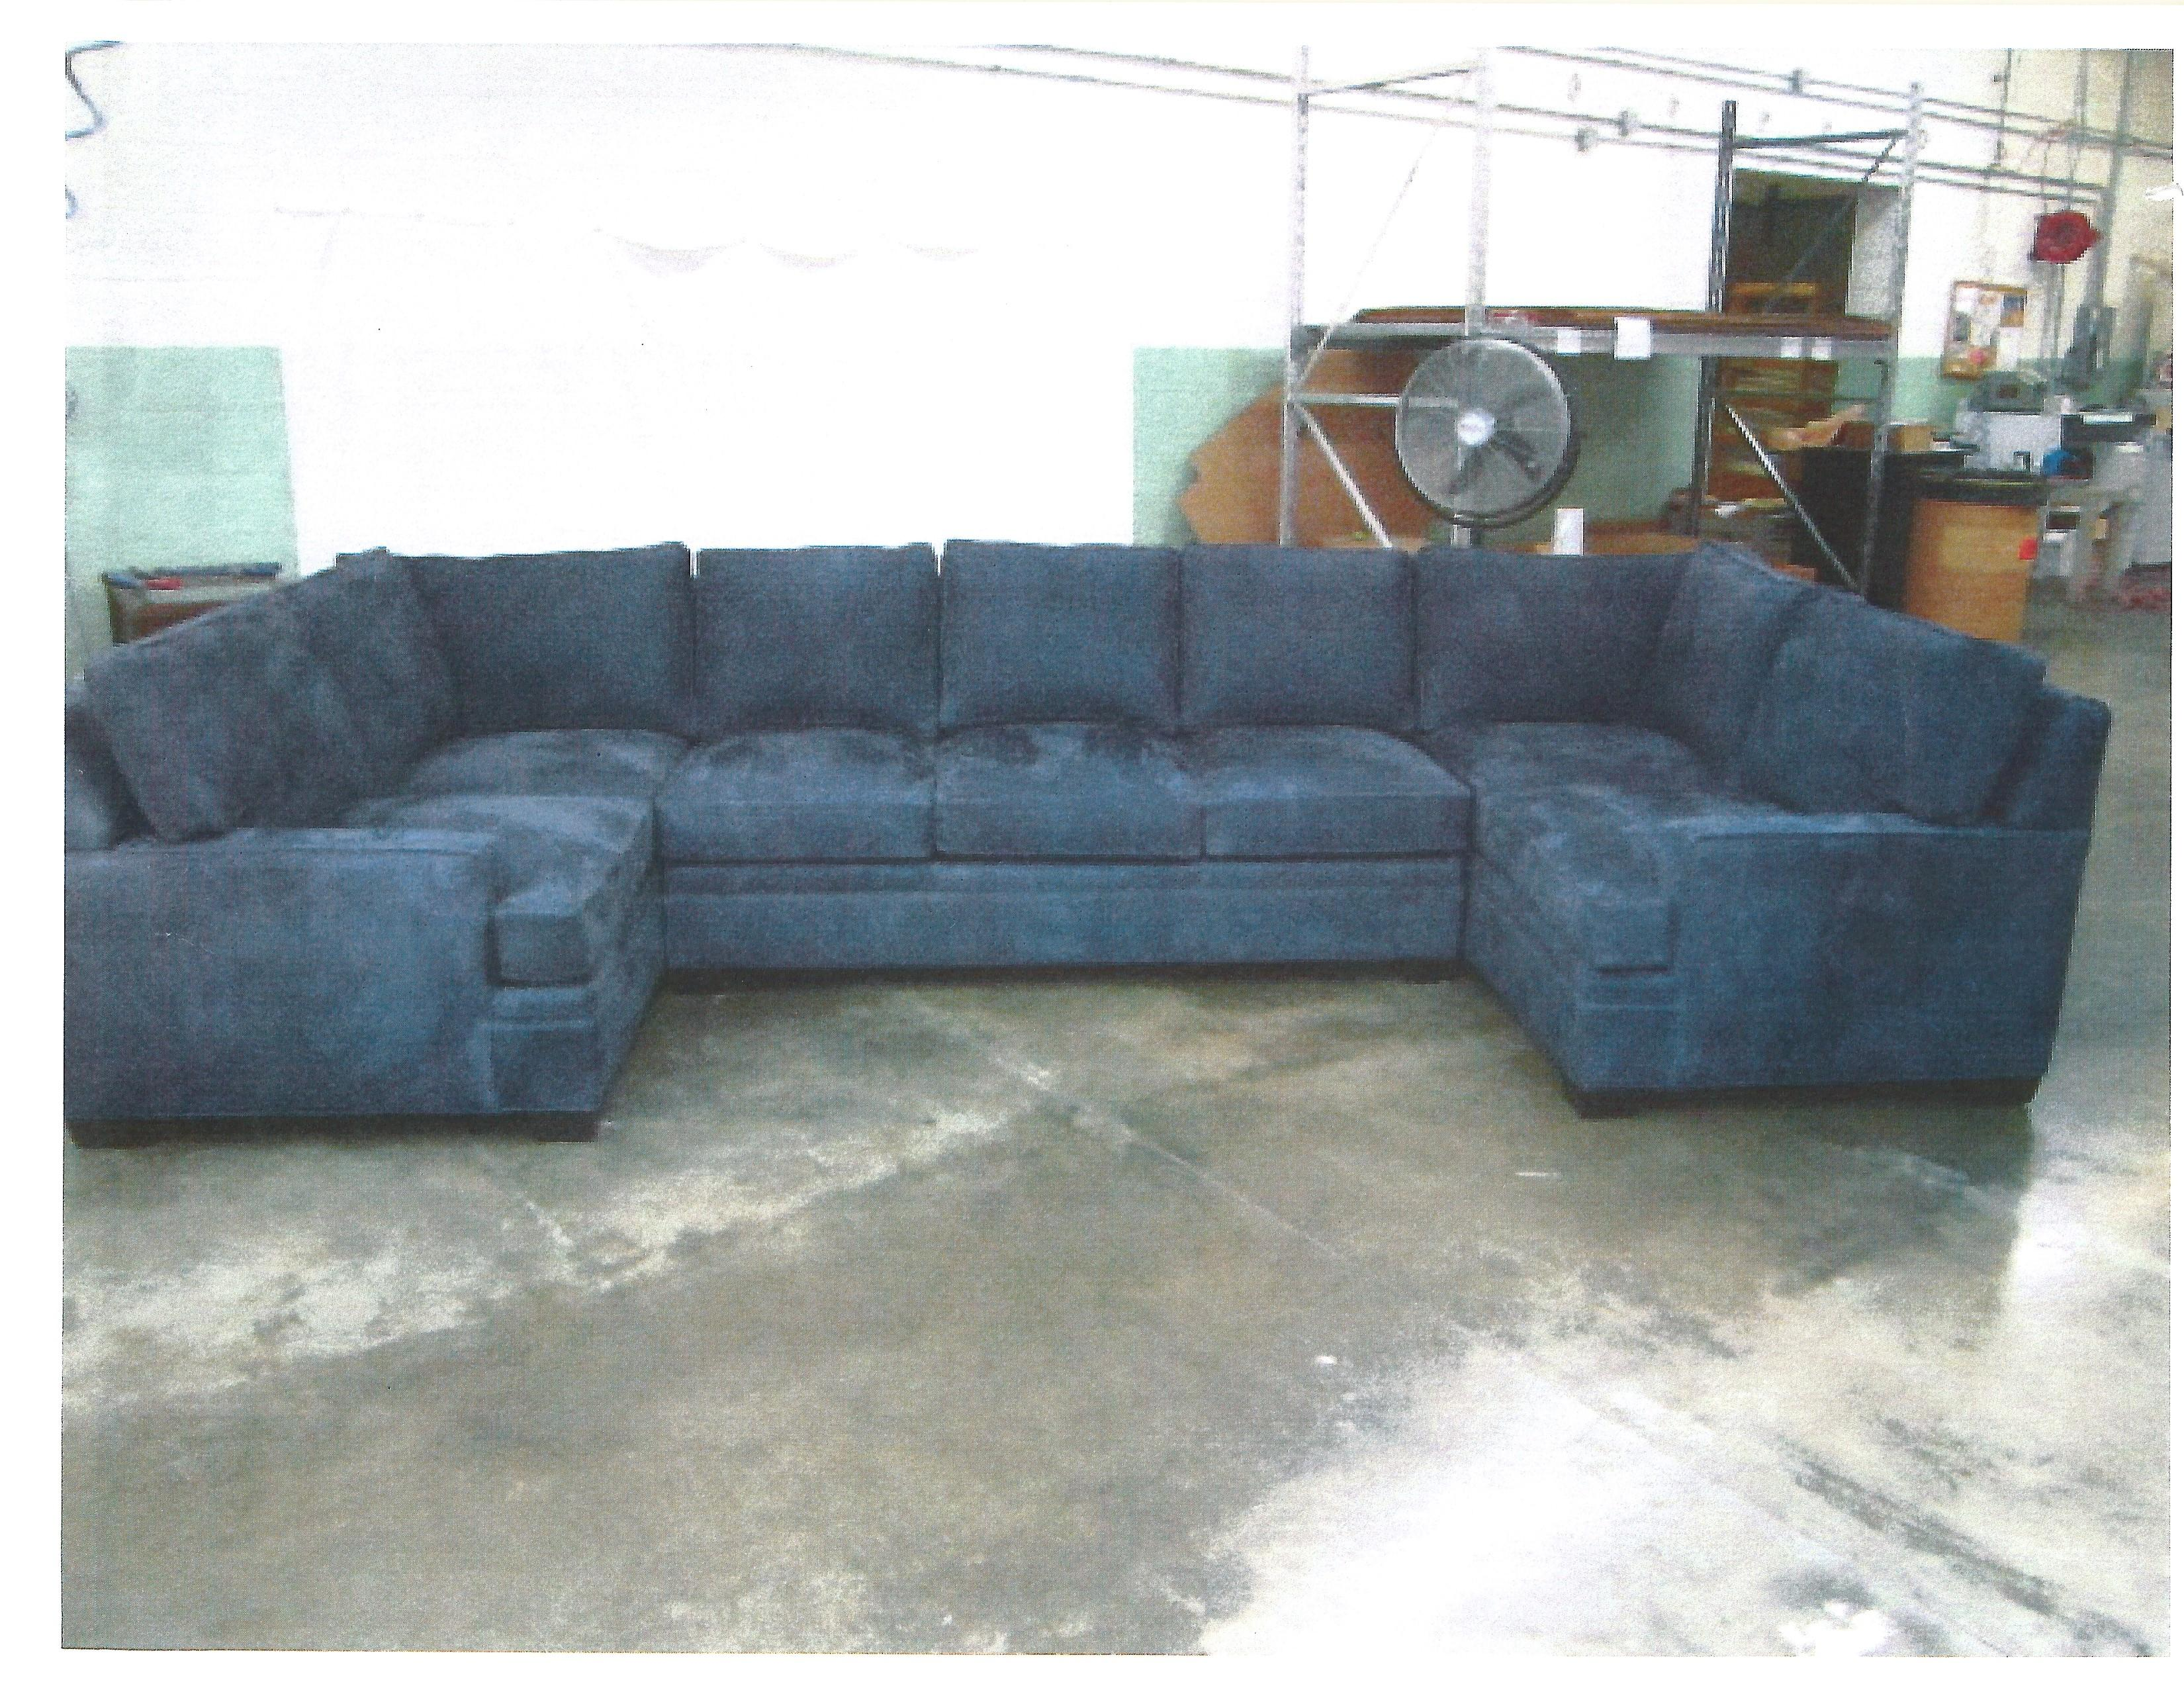 The nearly $32,000 sectional sofa from Carpet Gallery was paid for with taxpayer money for Chief Justice Allen Loughry's chambers. (WCHS/WVAH)